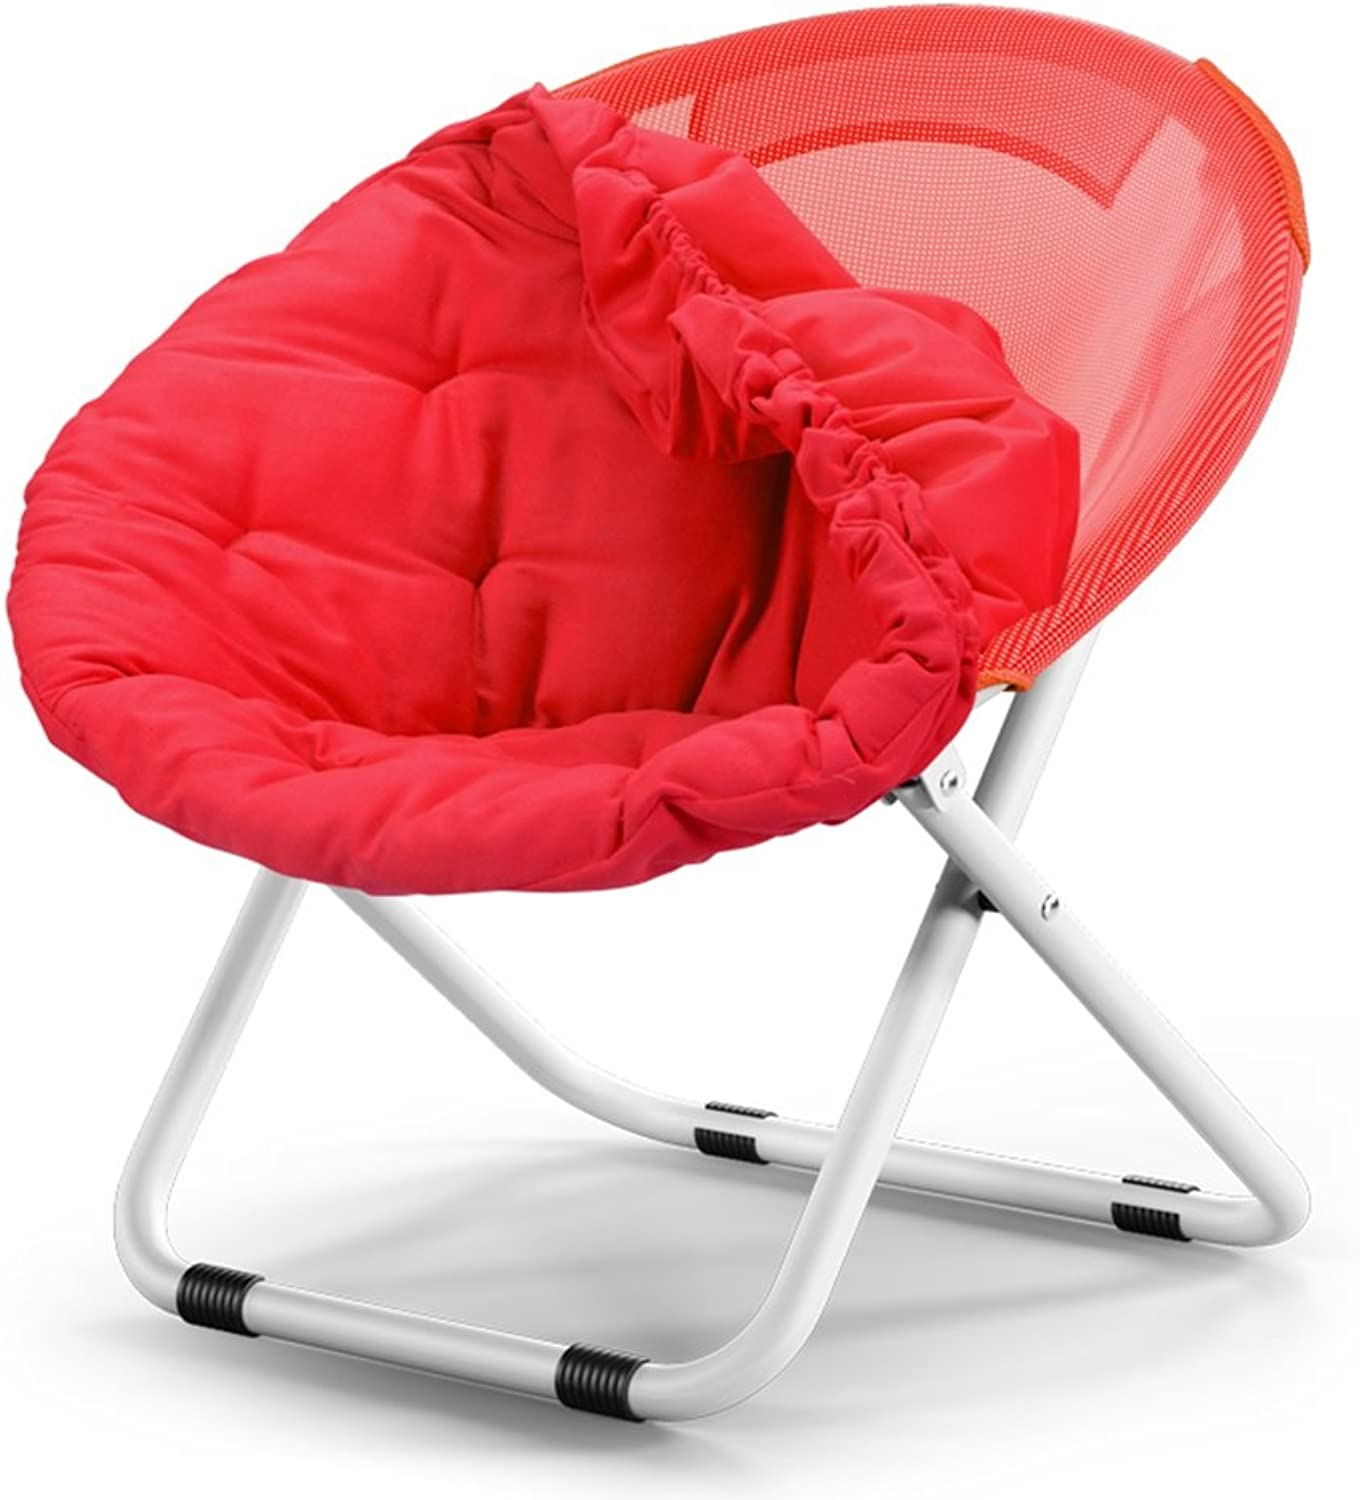 GLJ Adult Moon Chair Sun Chair Lazy Chair Recliner Folding Chair Round Chair Sofa Chair Folding Chair (color   pink red)